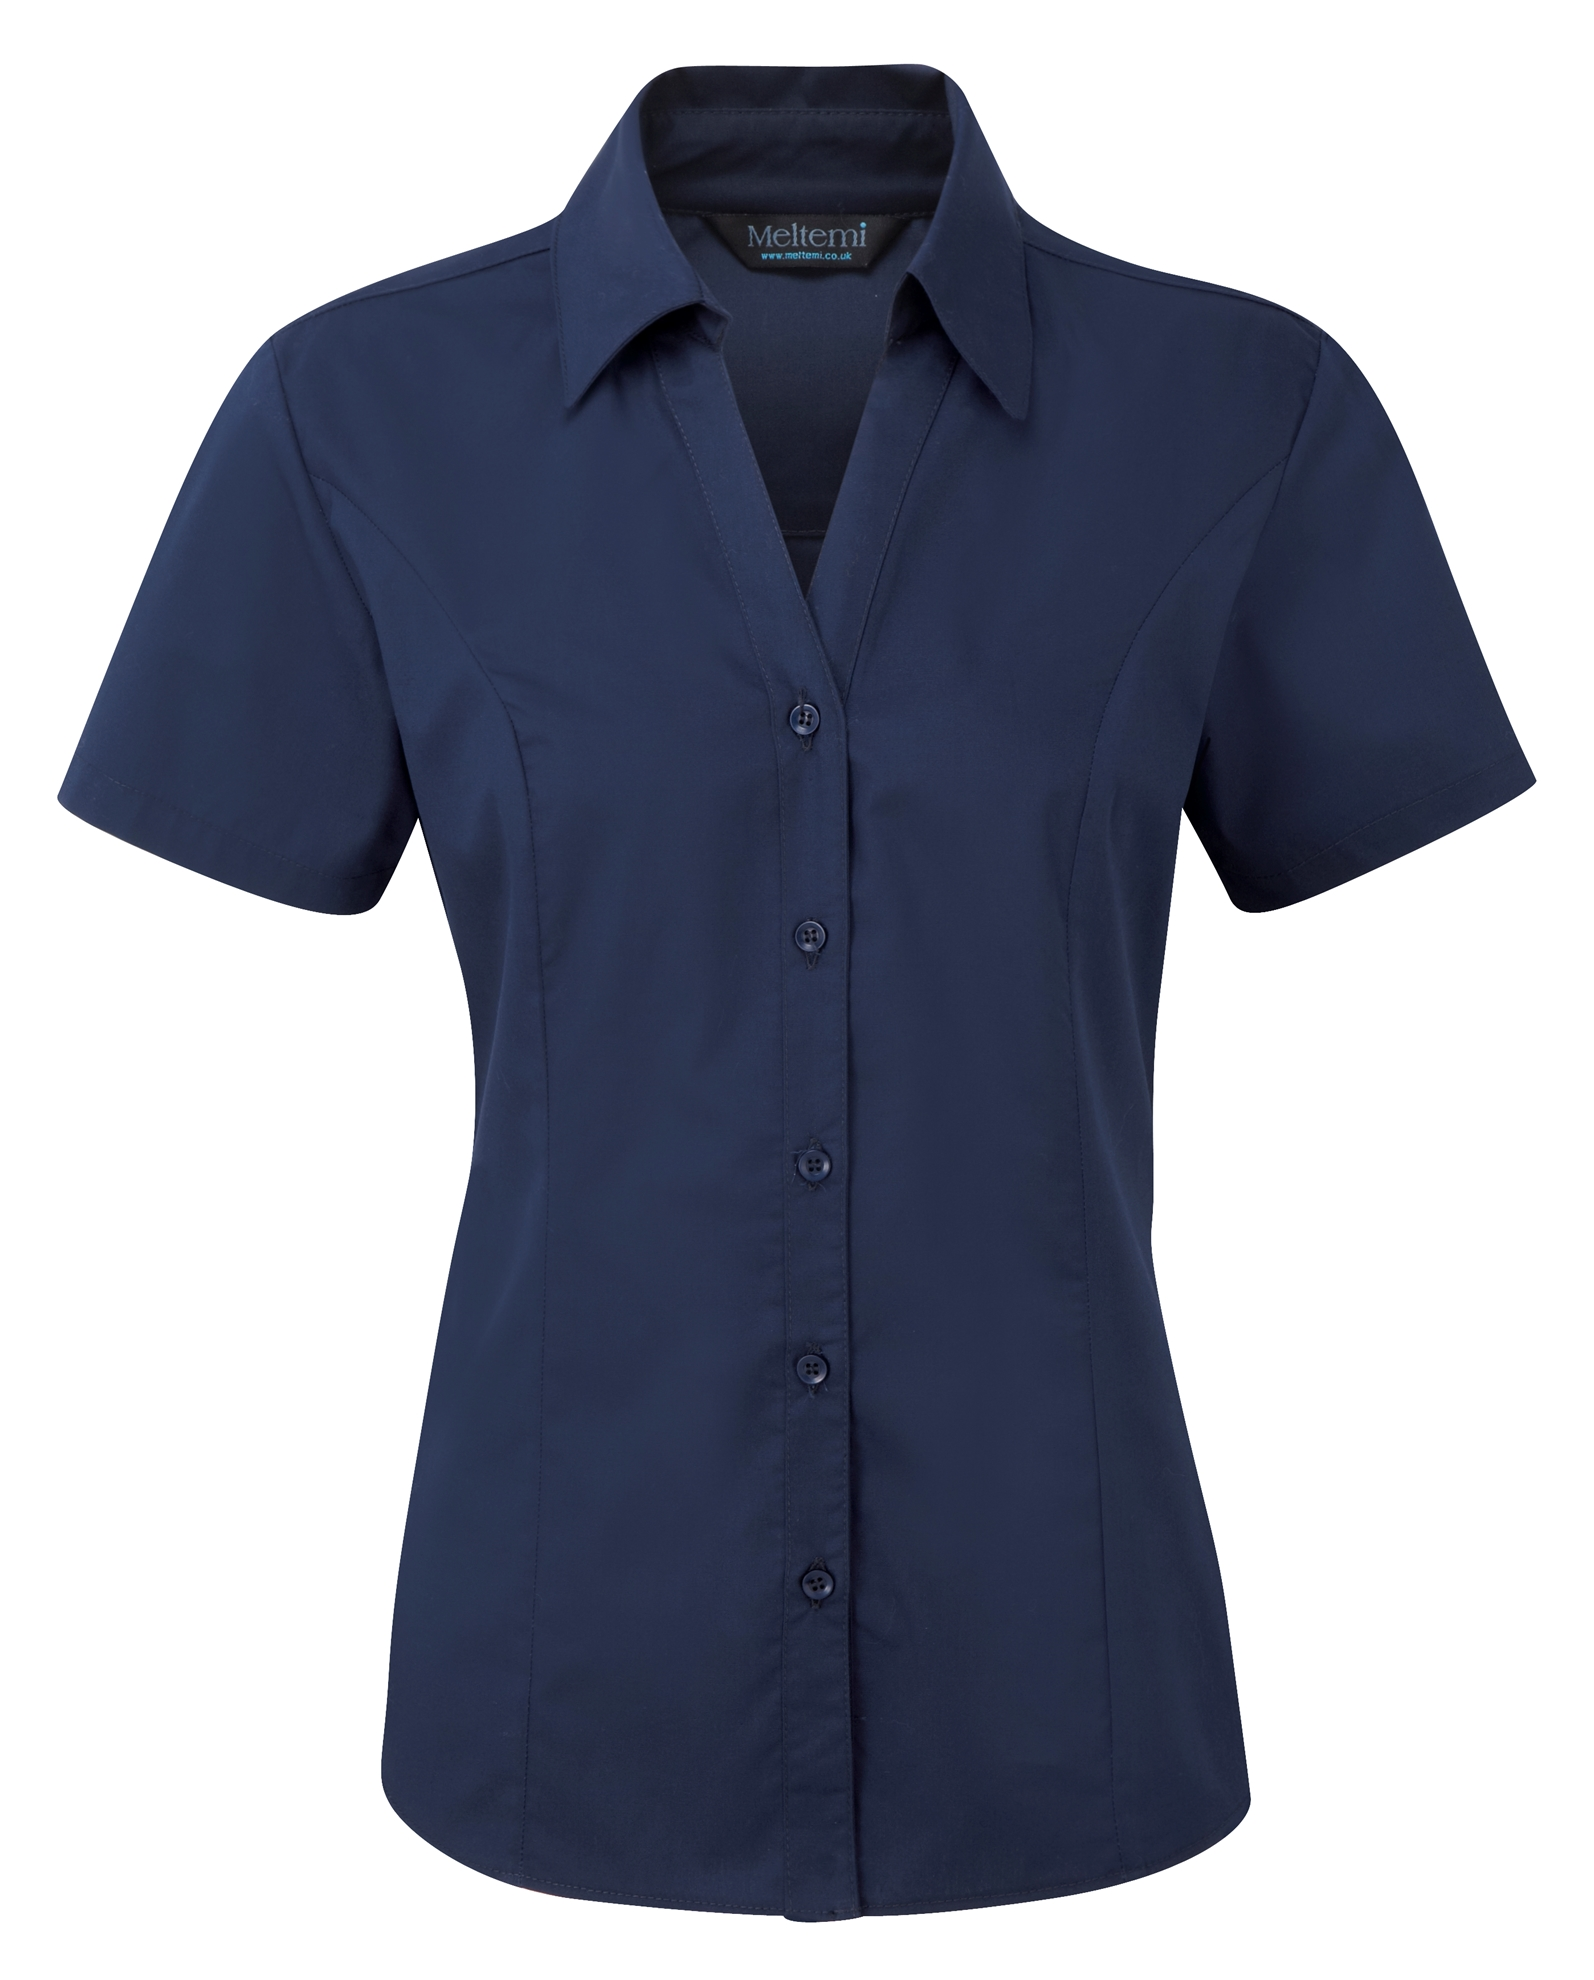 Picture of Semi-Fitted Polycotton Blouse - Plain Navy